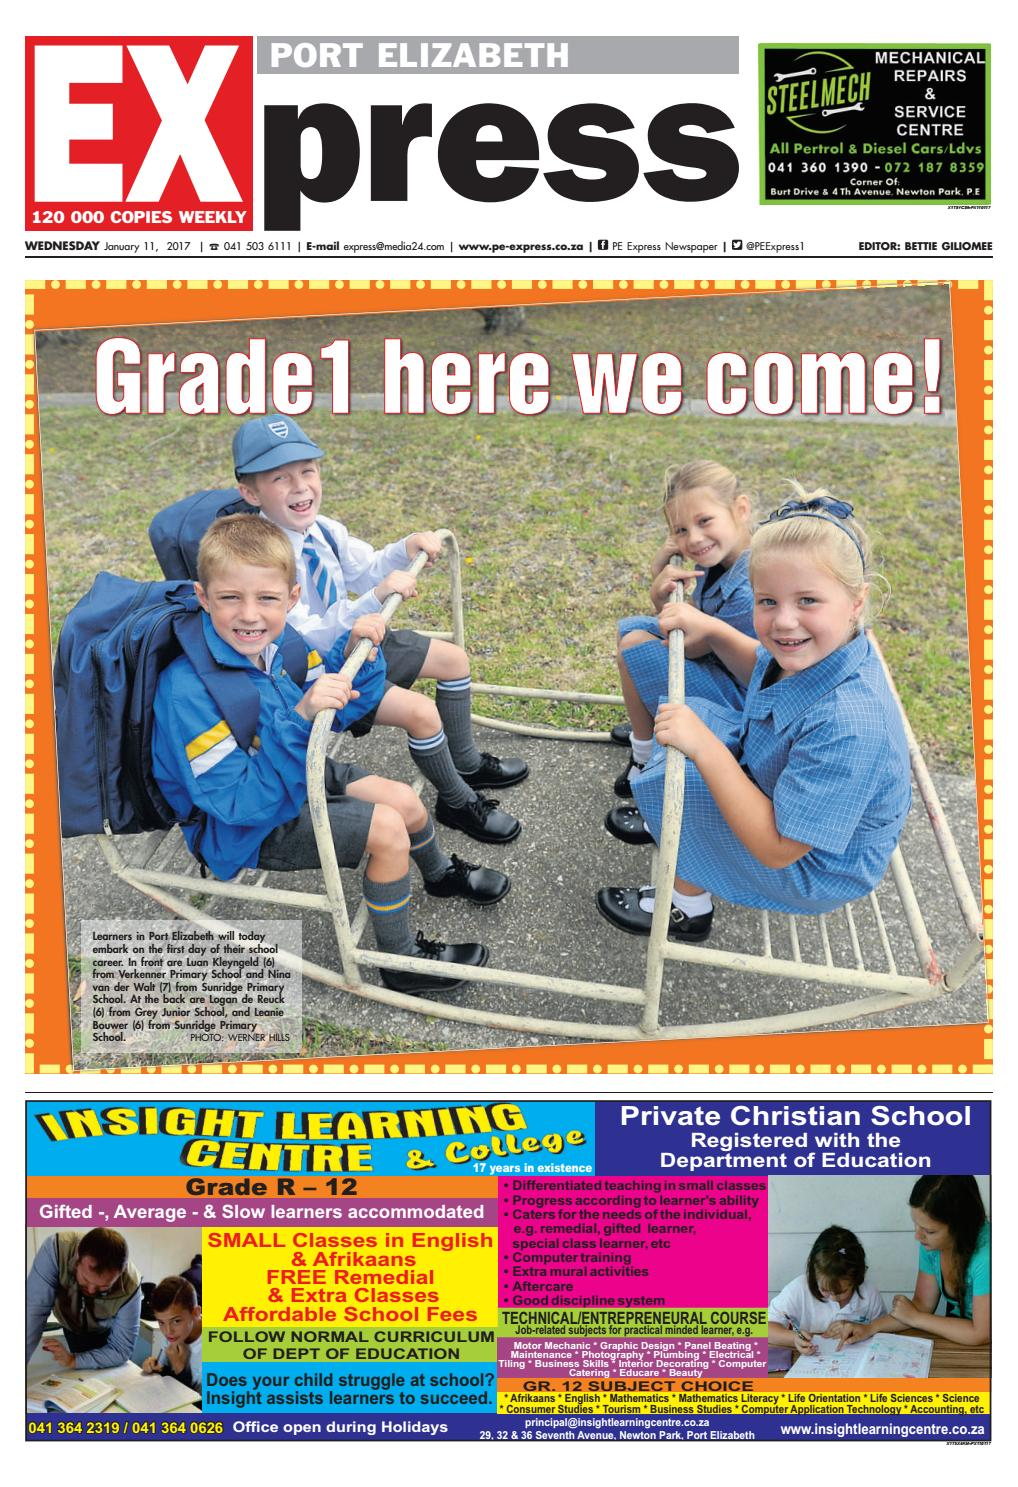 Pe express 11 january 2017 by pe express issuu for Extra mural courses